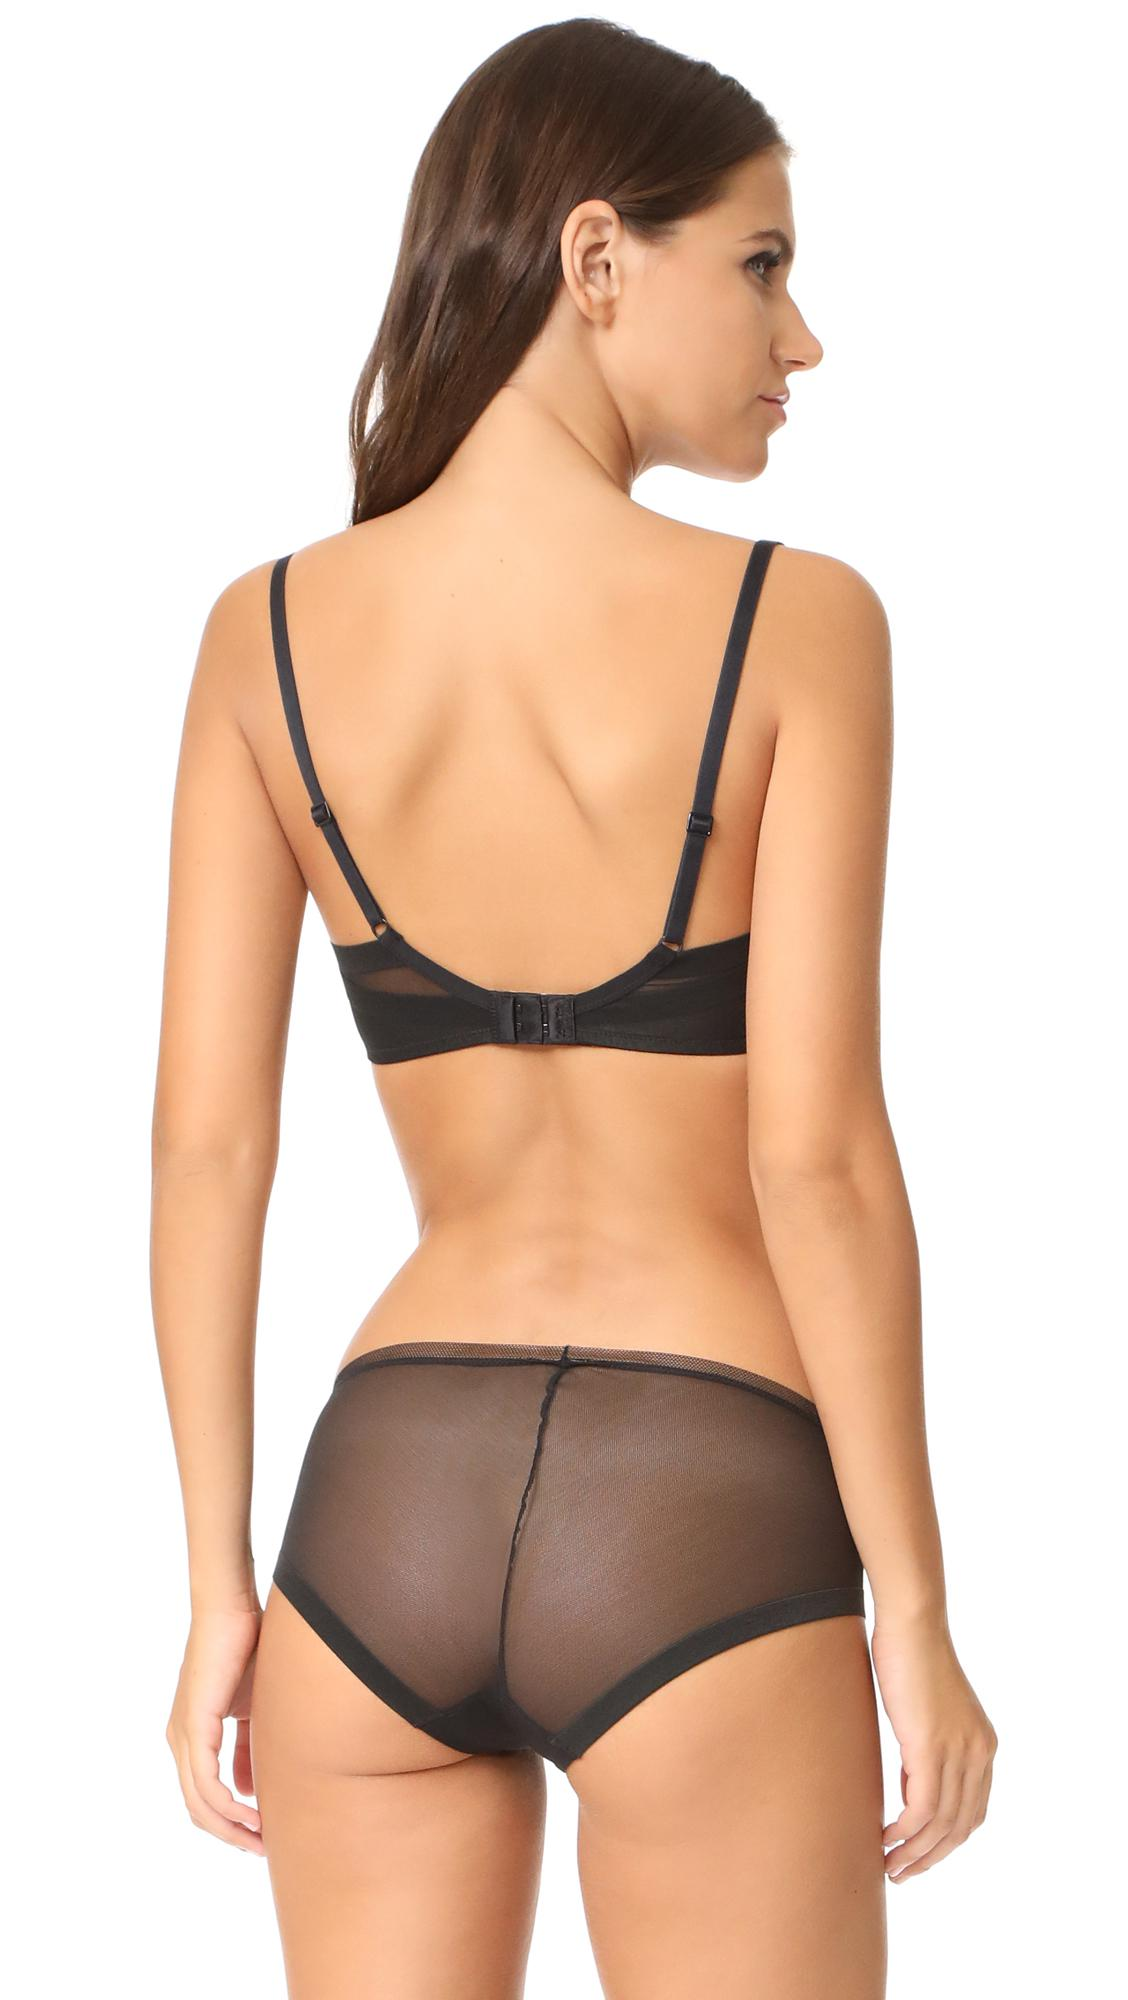 84e5c111a448e Lyst - Calvin Klein Sculpted Lightly Lined Triangle Bra in Black